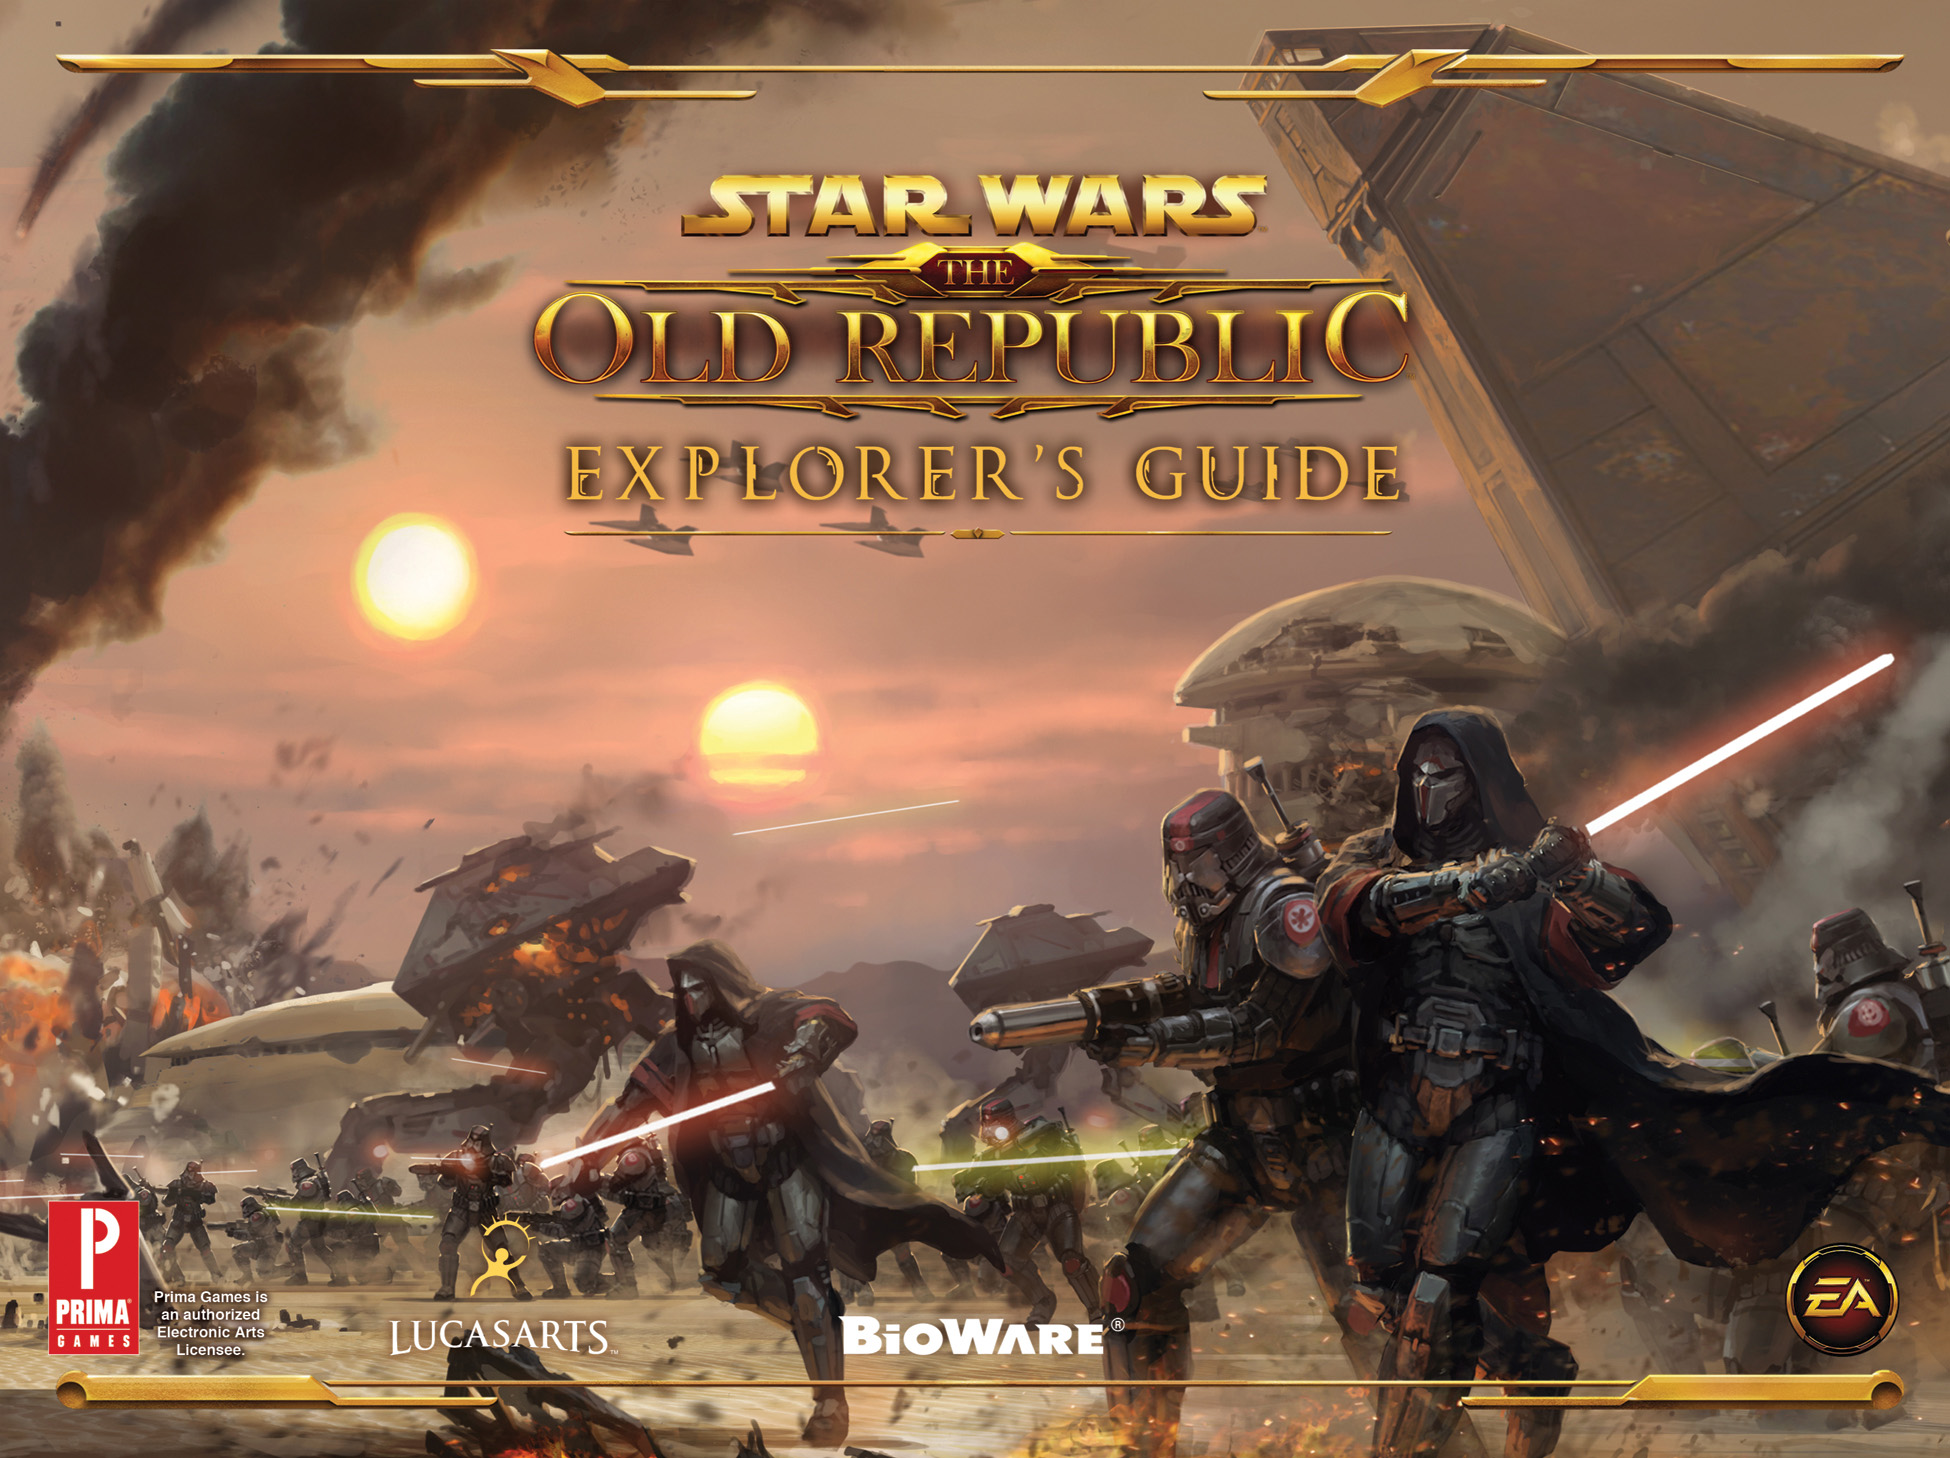 Star Wars: The Old Republic Explorer's Guide